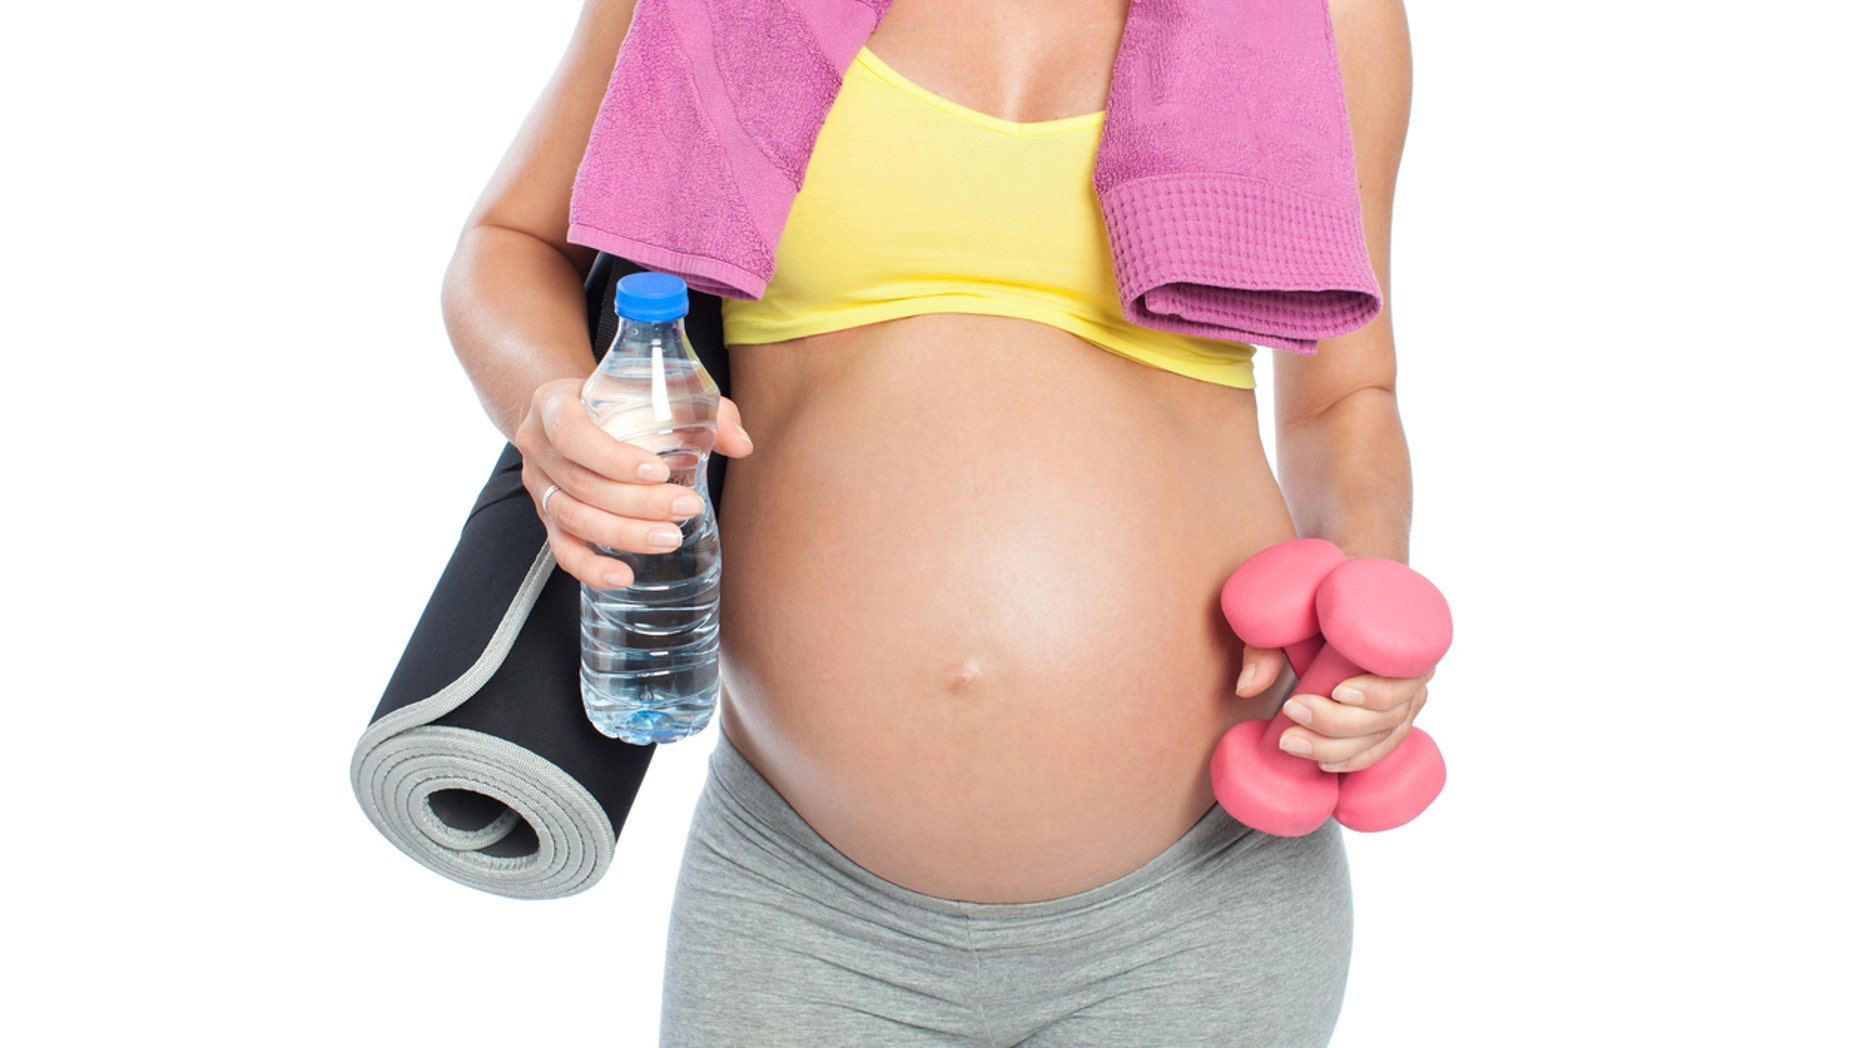 Pregnant woman standing with fitness accessories